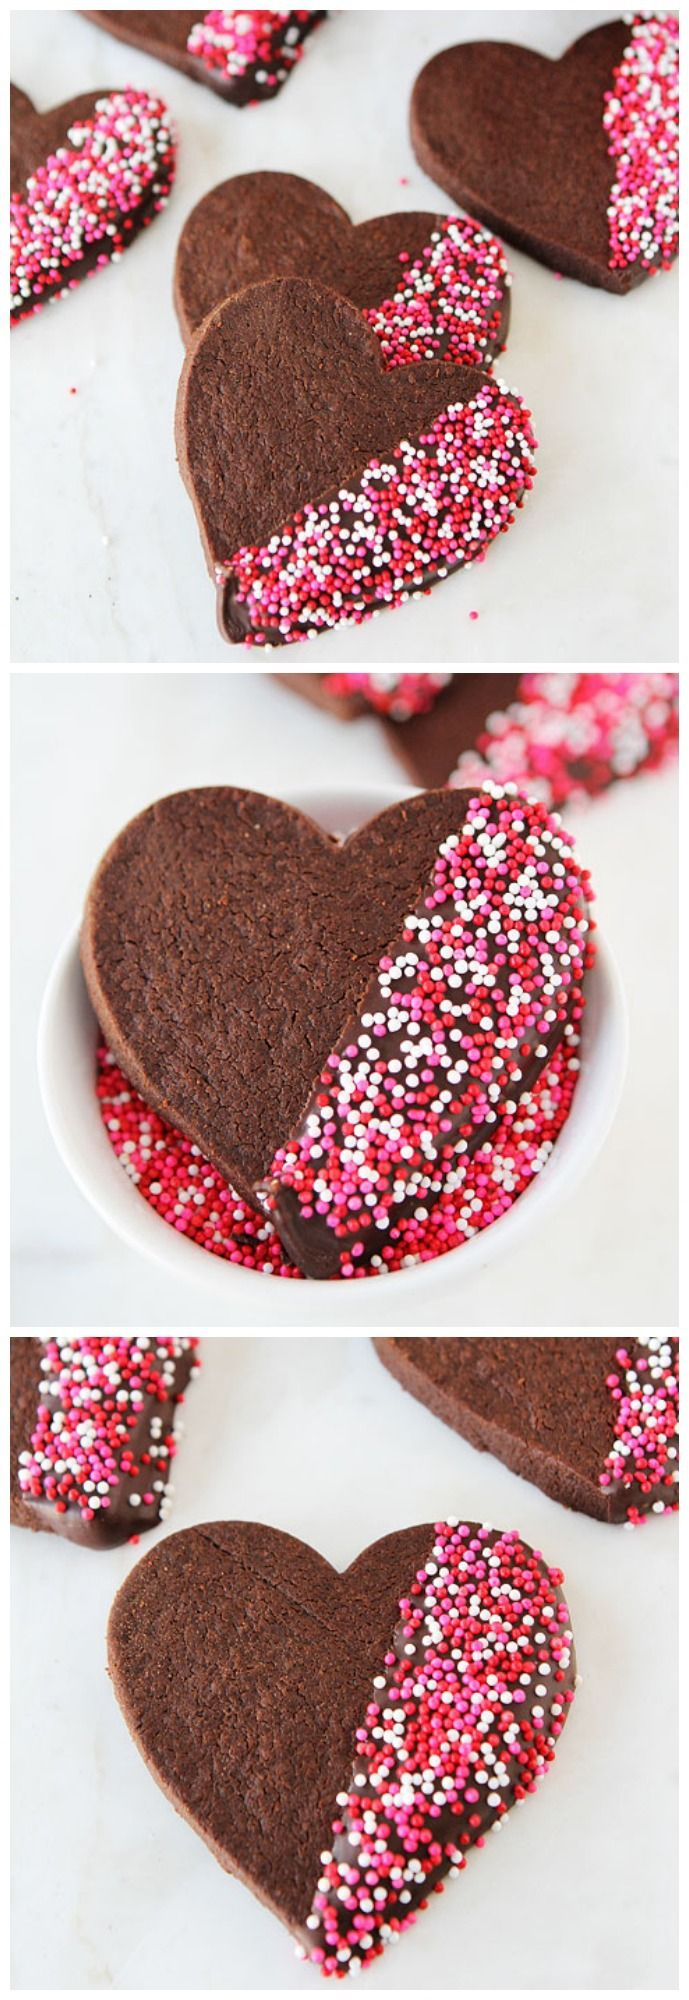 Chocolate Shortbread Heart Cookies Dipped in Chocolate on twopeasandtheirpod.com Great treat for Valentine's Day!